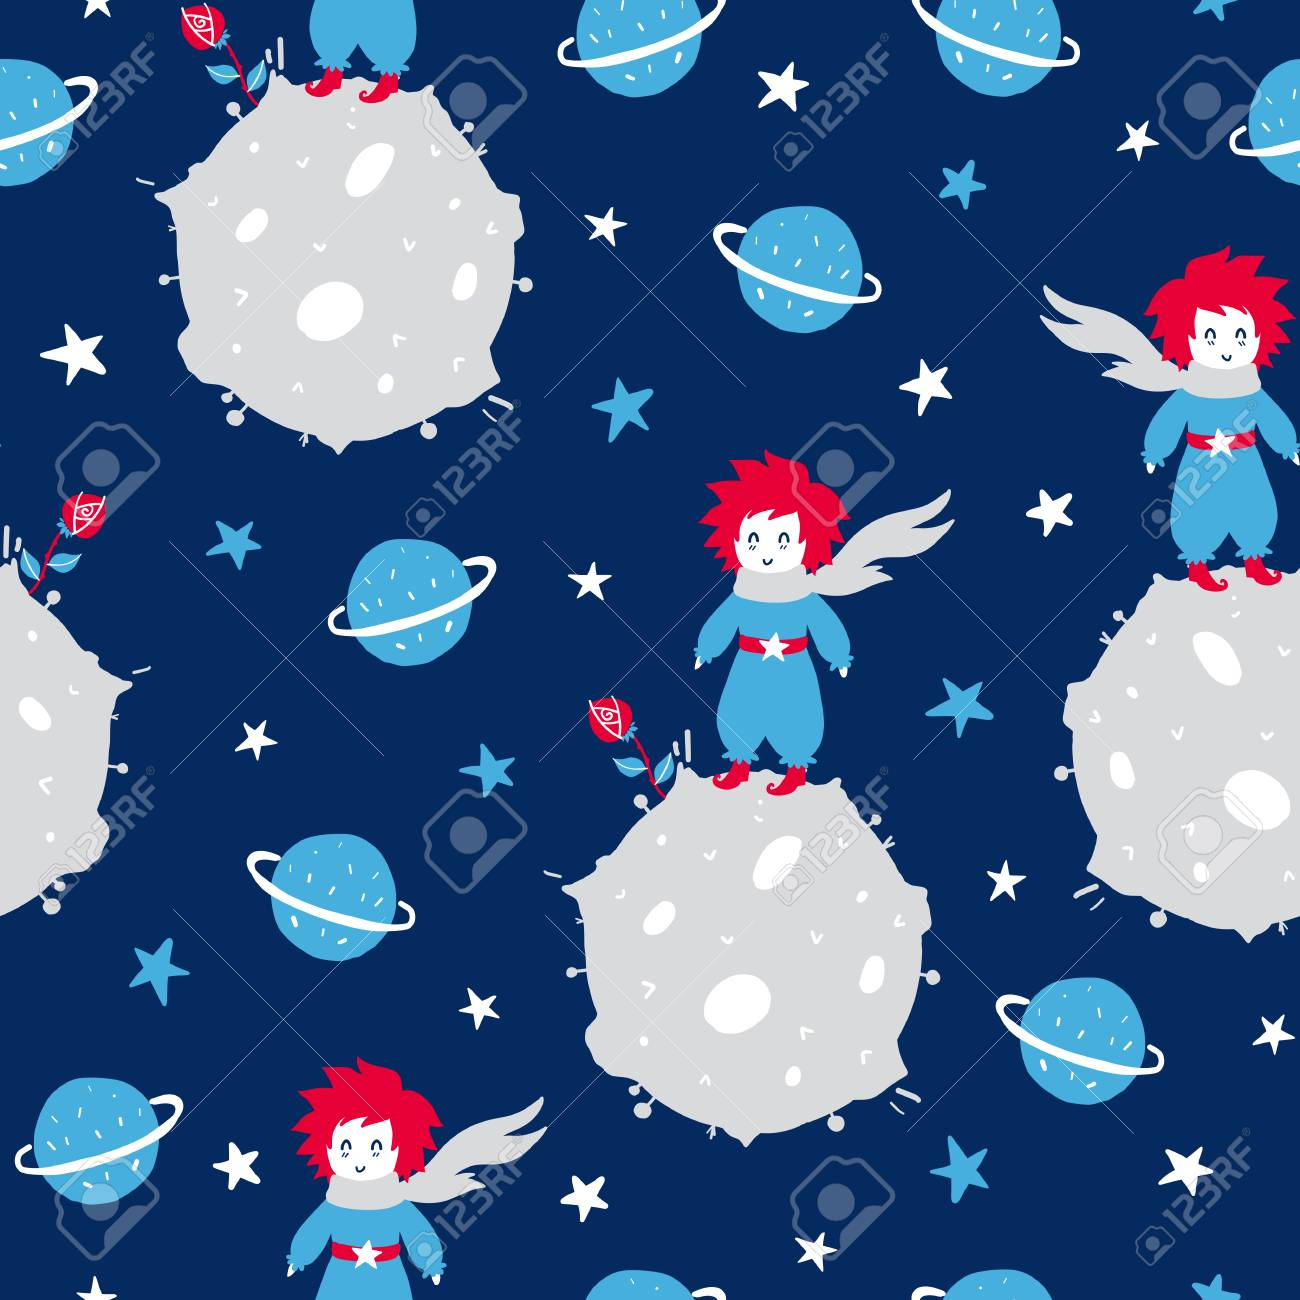 Fairytale cute seamless pattern. Color vector background with boy and planet. Illustration. Design for T-shirt, textile and prints. - 123206236